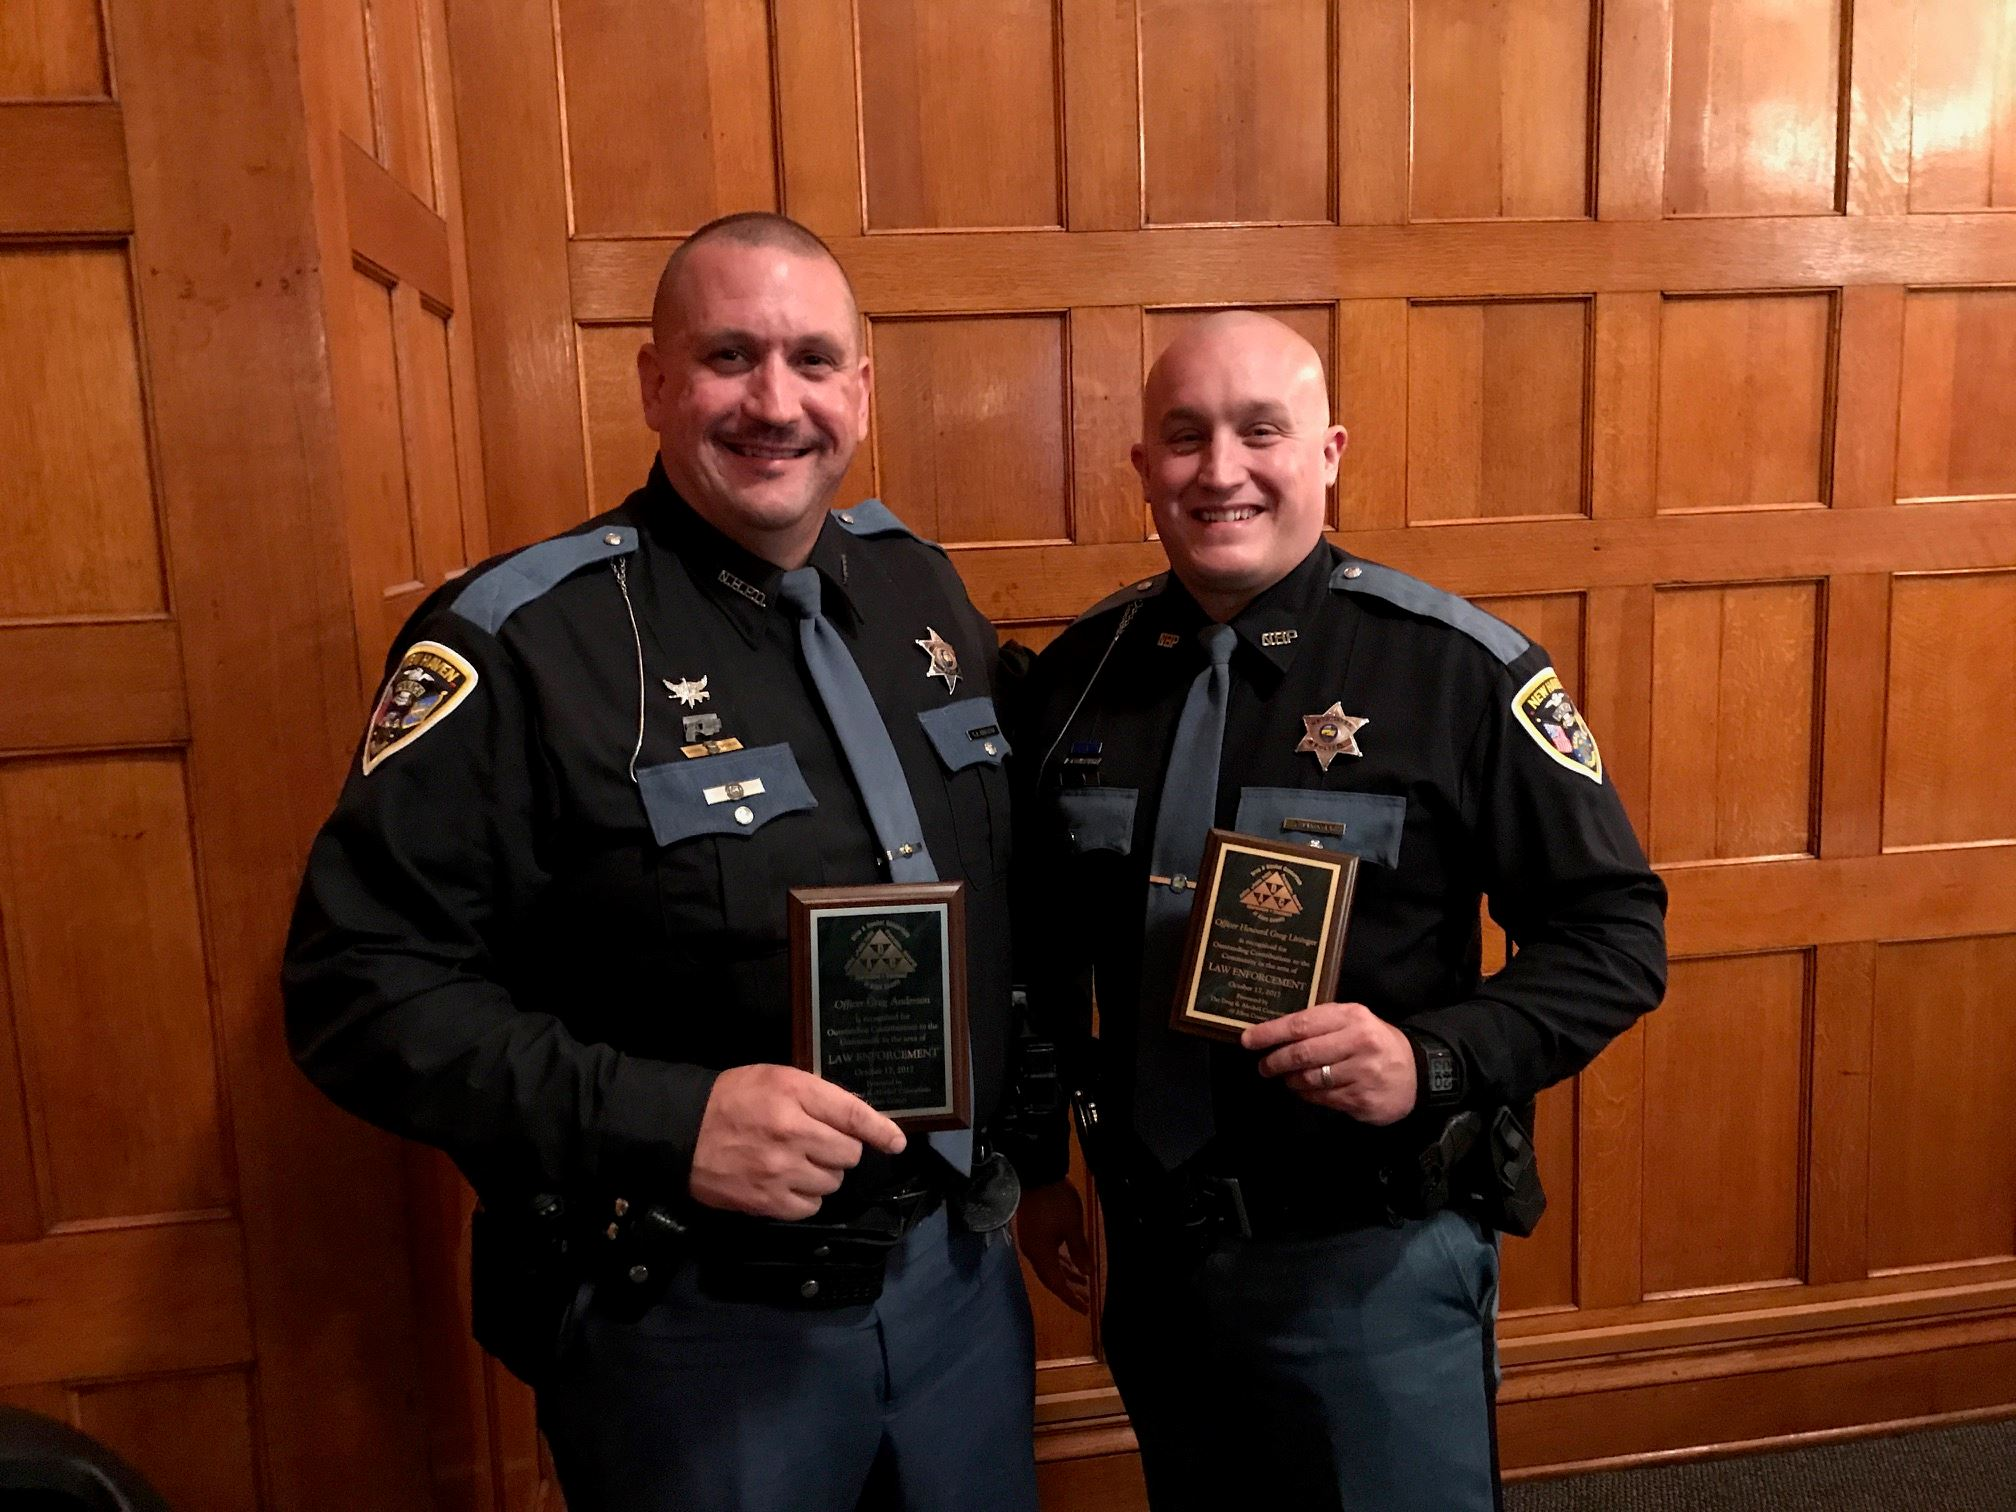 Officers Lininger and Anderson Receiving Awards